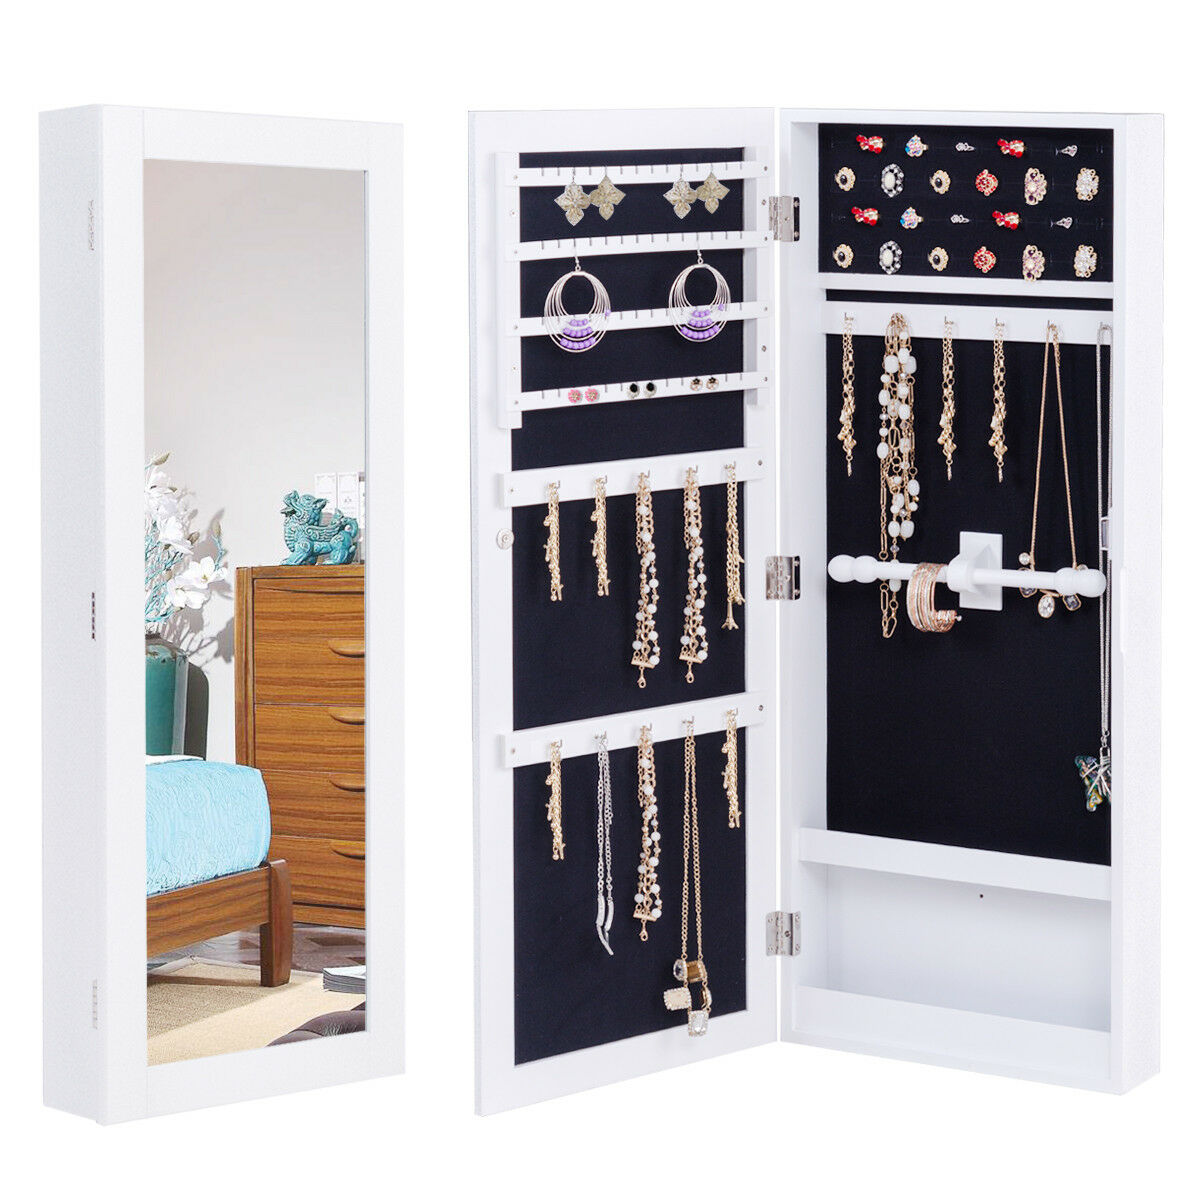 Wall Mounted Mirrored Jewelry Cabinet Armoire Storage Organizer Christmas  Gift 1 Of 11FREE Shipping ...